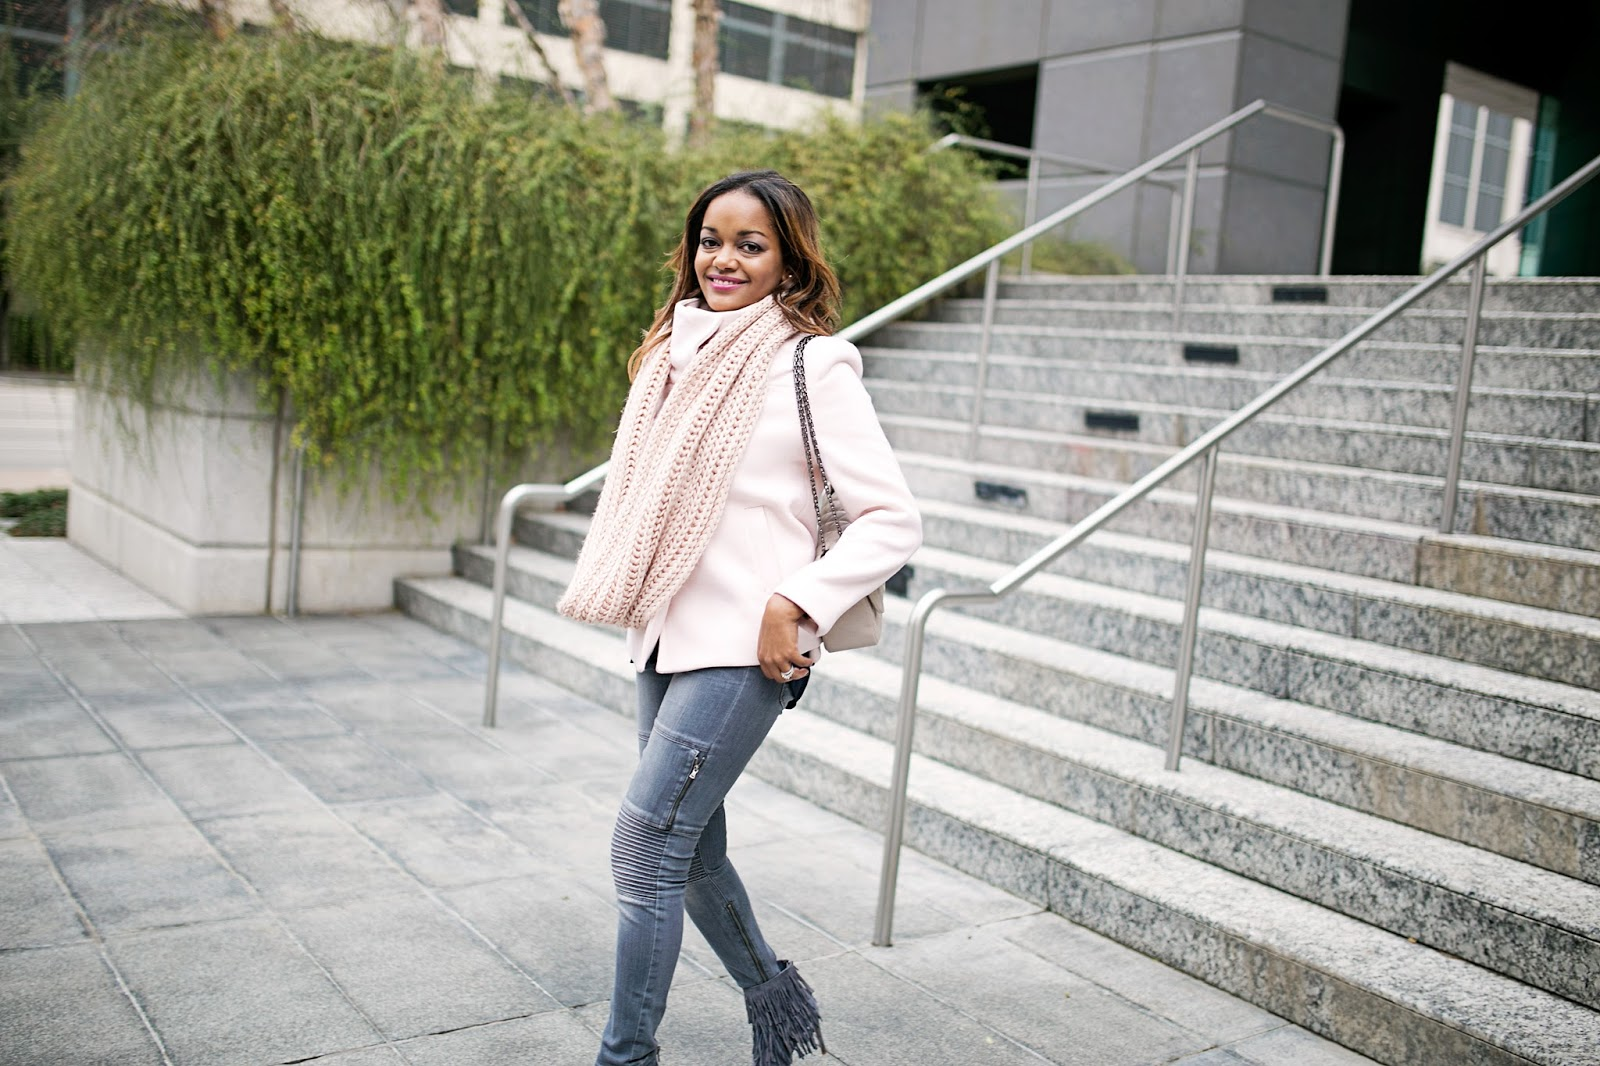 blush pink coat, chanel look for less, quilted handbag, fringe booties, fringe, j brand jeans, how to wear infinity scarf, dallas blogger, fashion blogger, black girl blogger, steve madden flapper booties, old navy coat